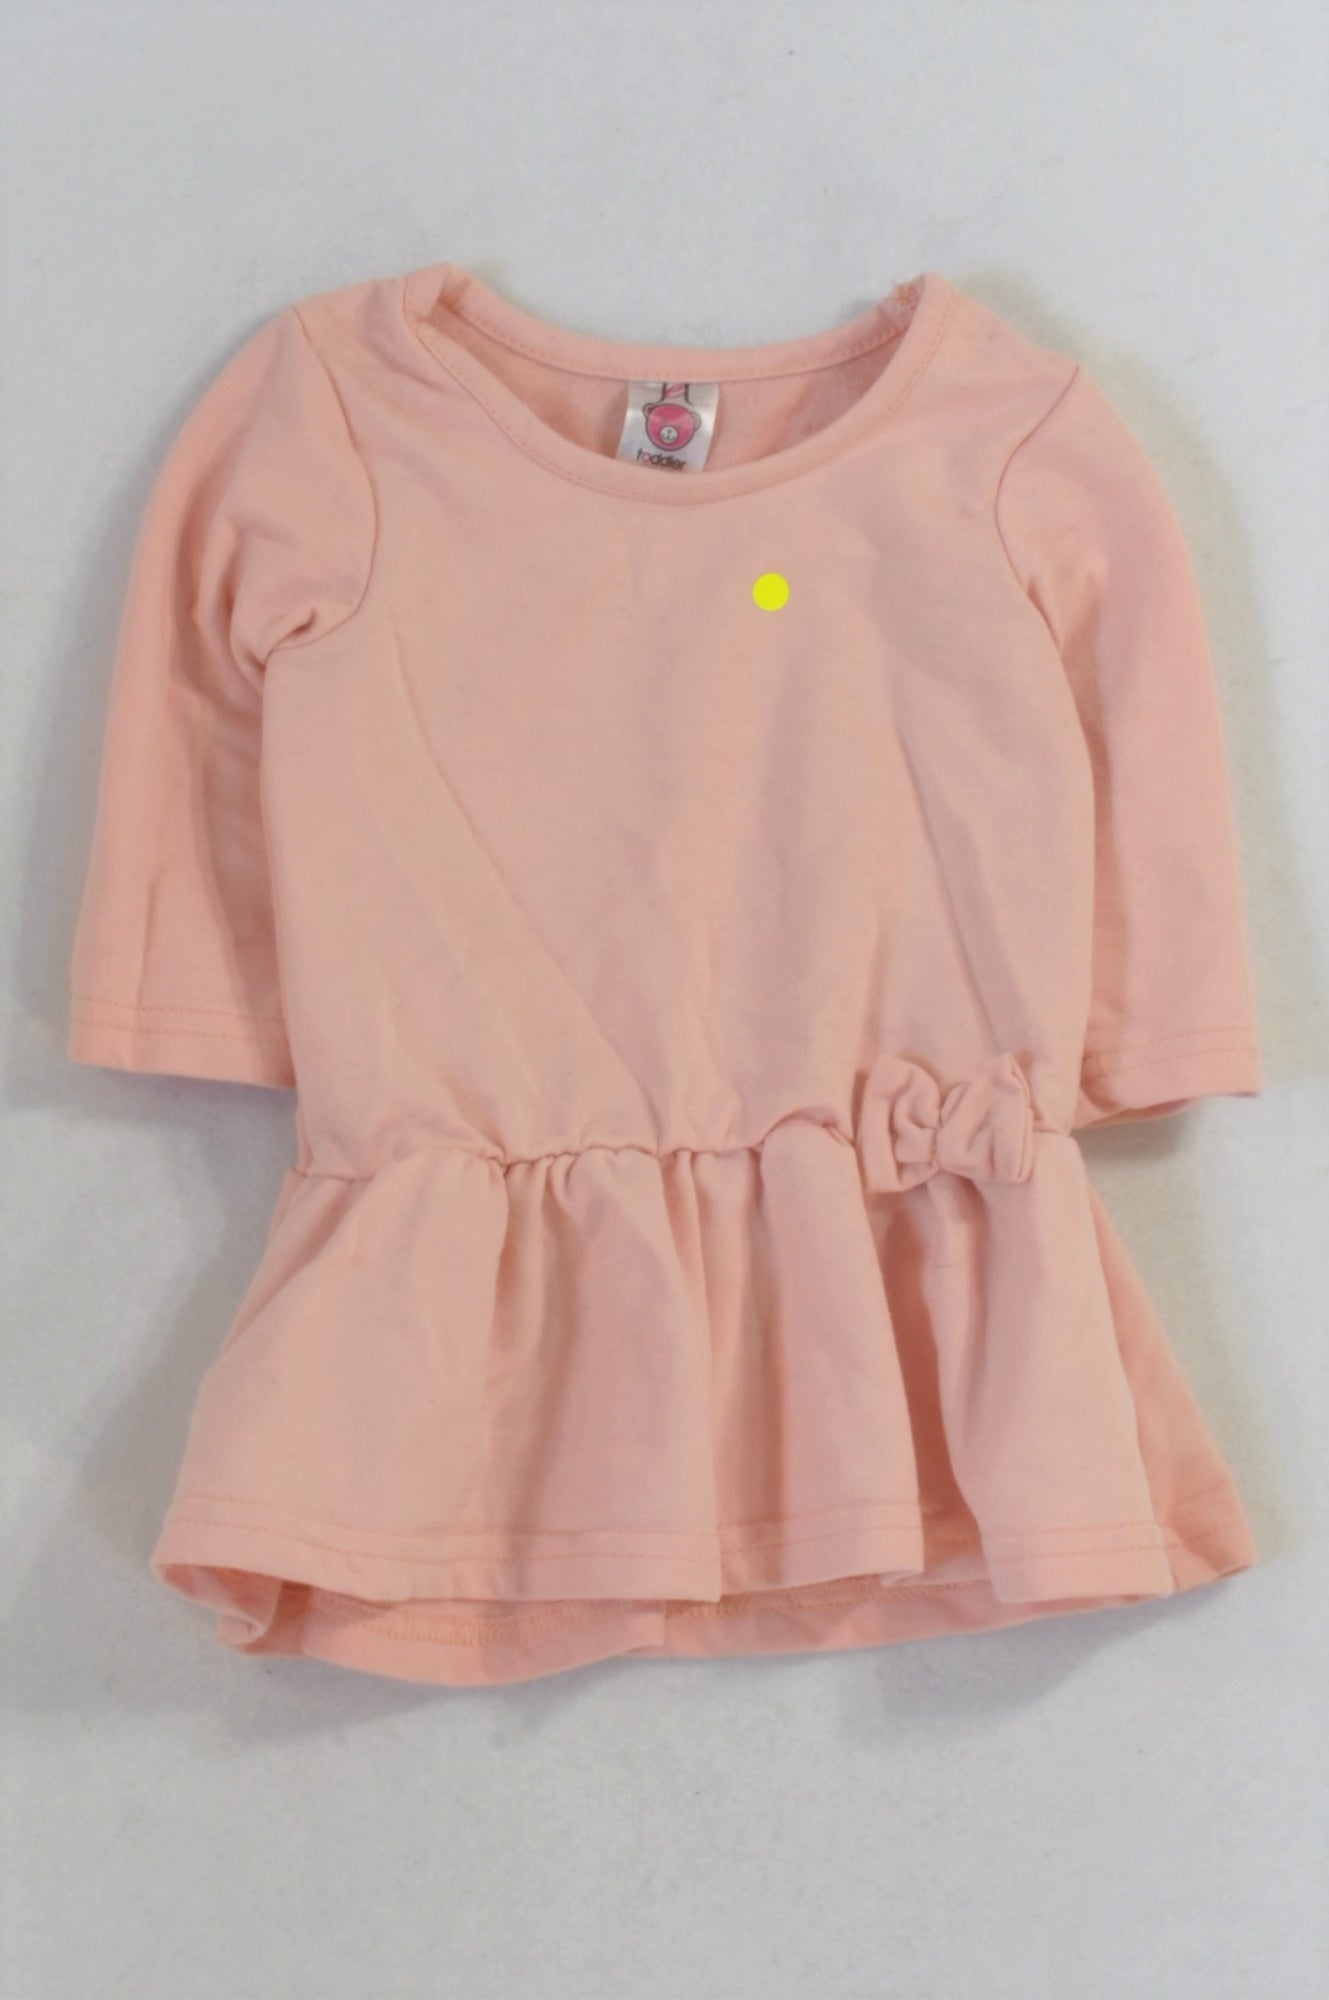 Jet Basic Pink Bow Dress Girls 3-6 months